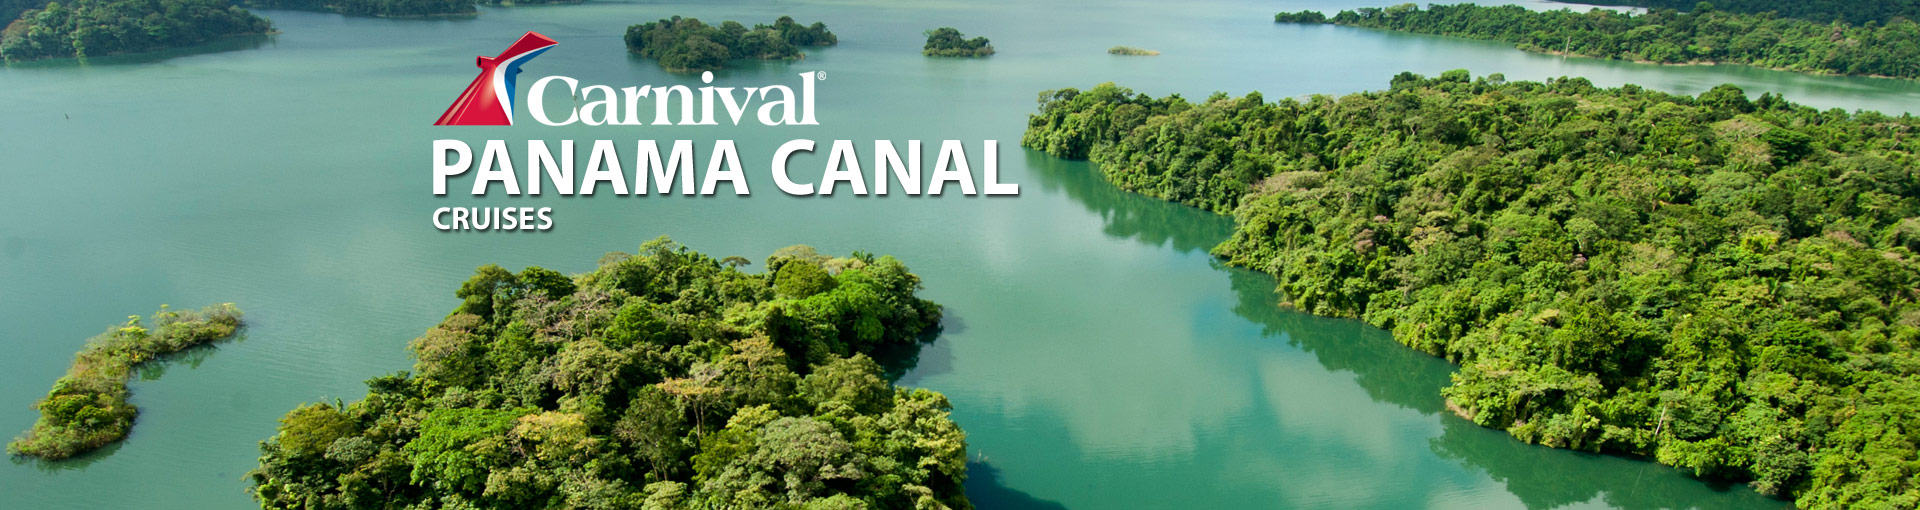 Celebrity cruise to panama canal 2019 cruises